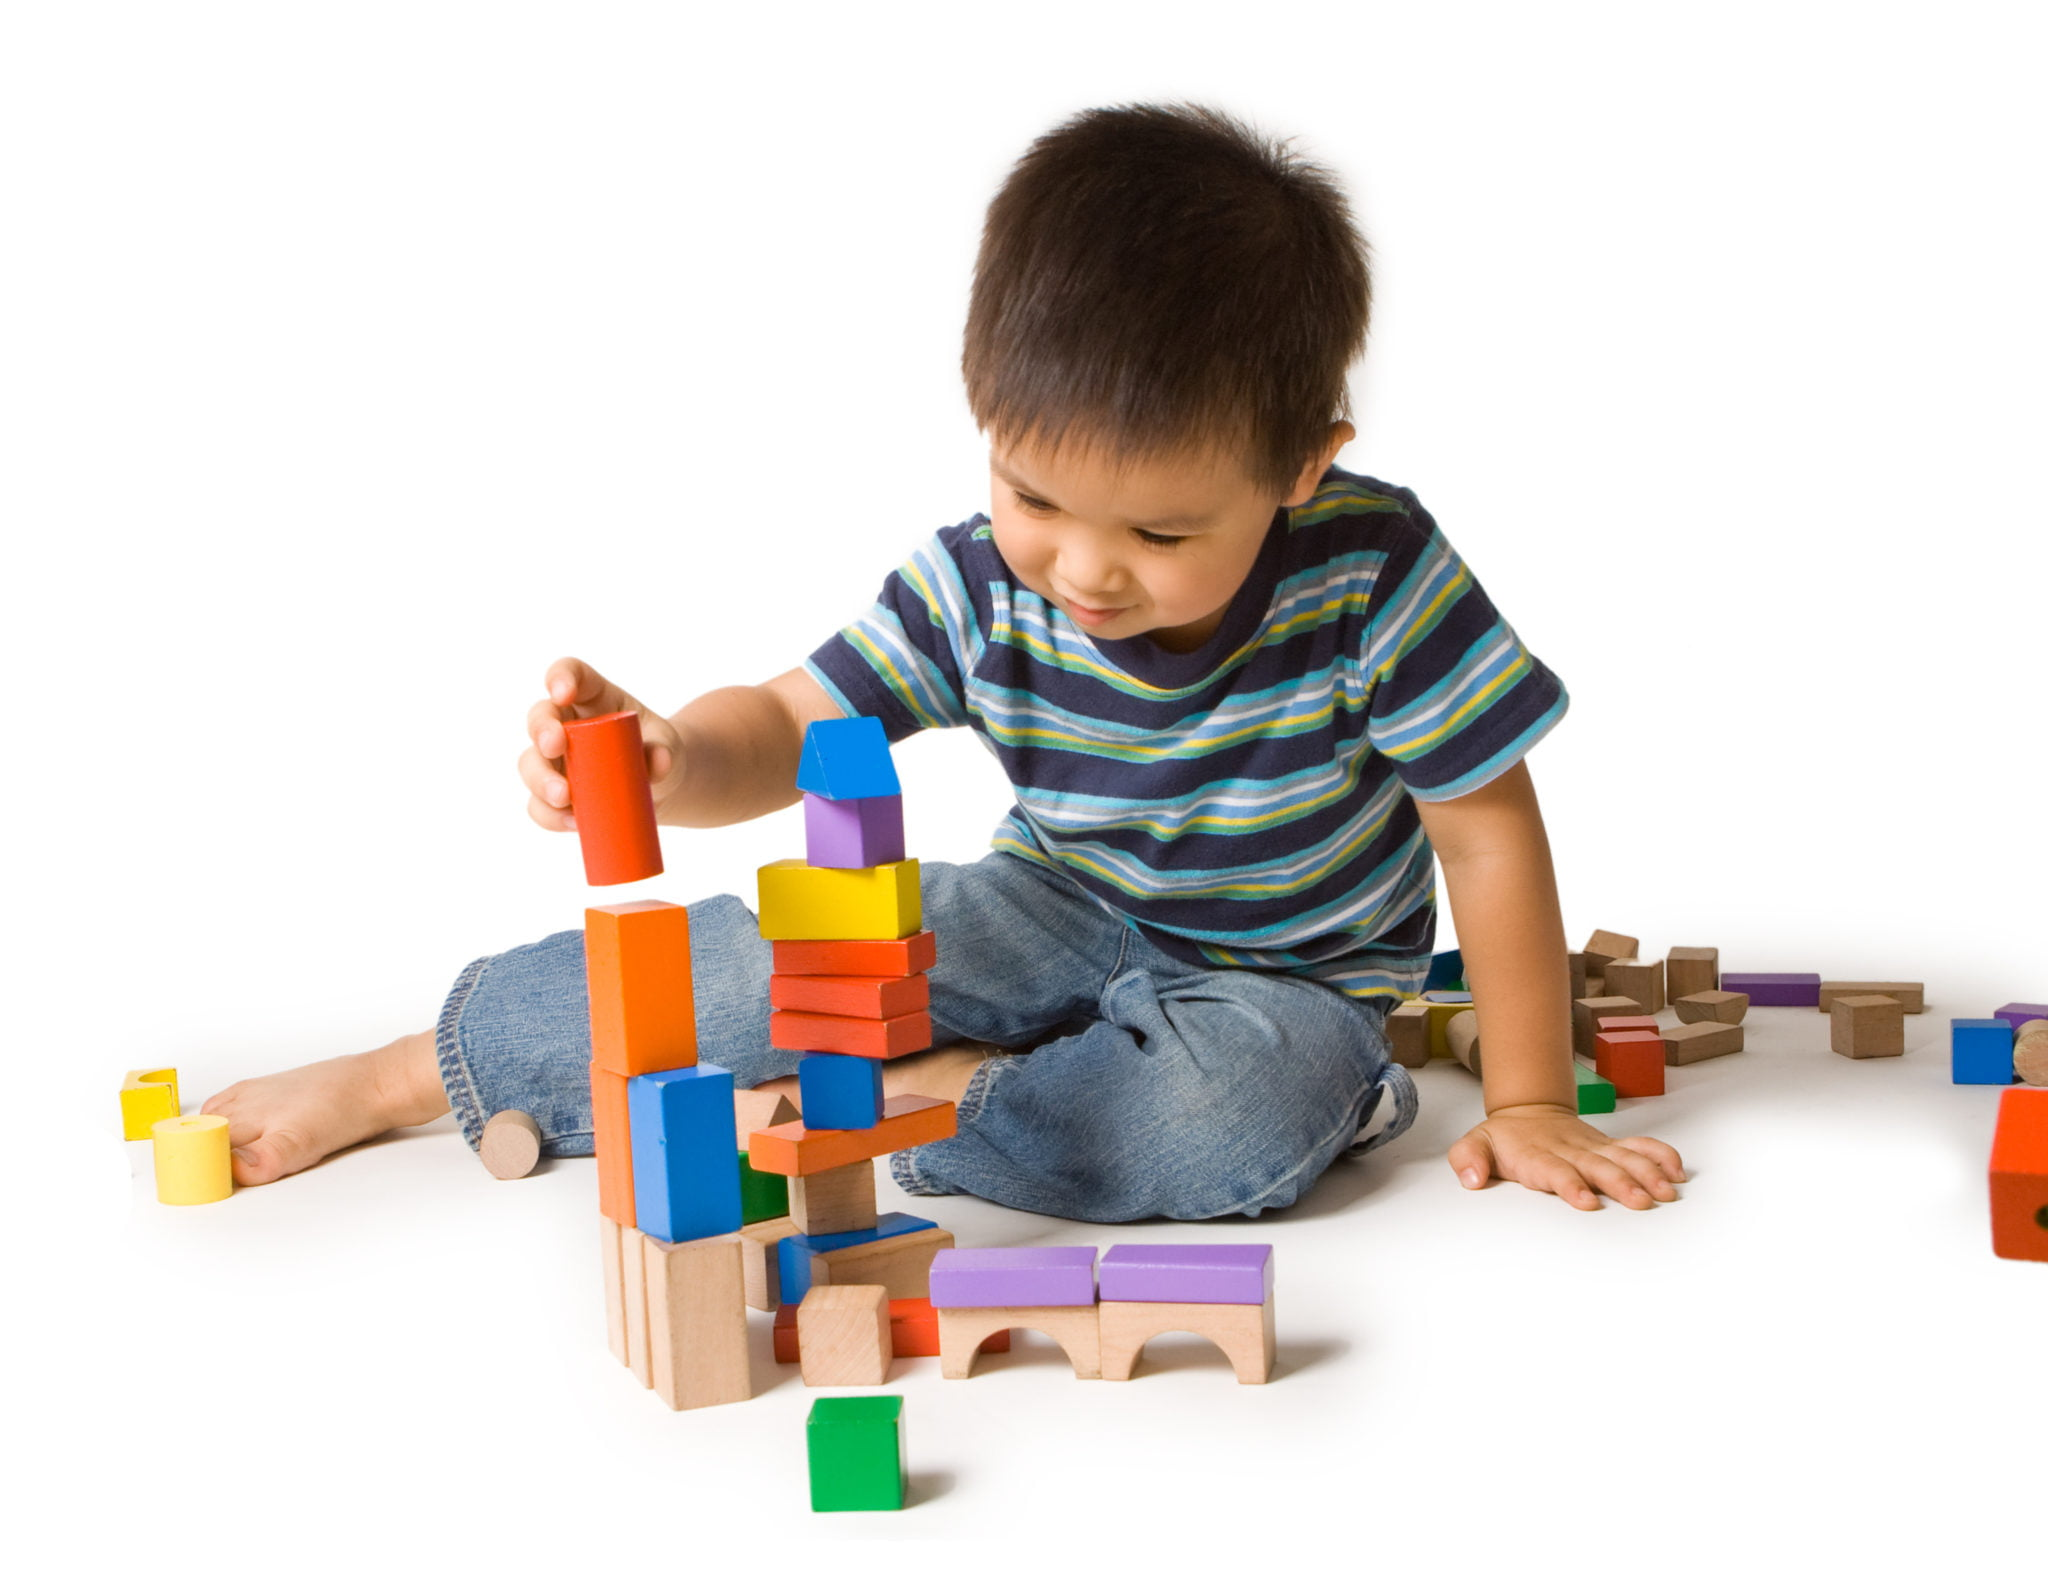 the development of childs gross and fine motor skills Summarizes how preschoolers will refine and develop abilities in their gross-motor, fine-motor fine-motor skills preschool children gain more precision in fine-motor development, or the perceptual-motor skills perceptual-motor development refers to the child's developing ability to.